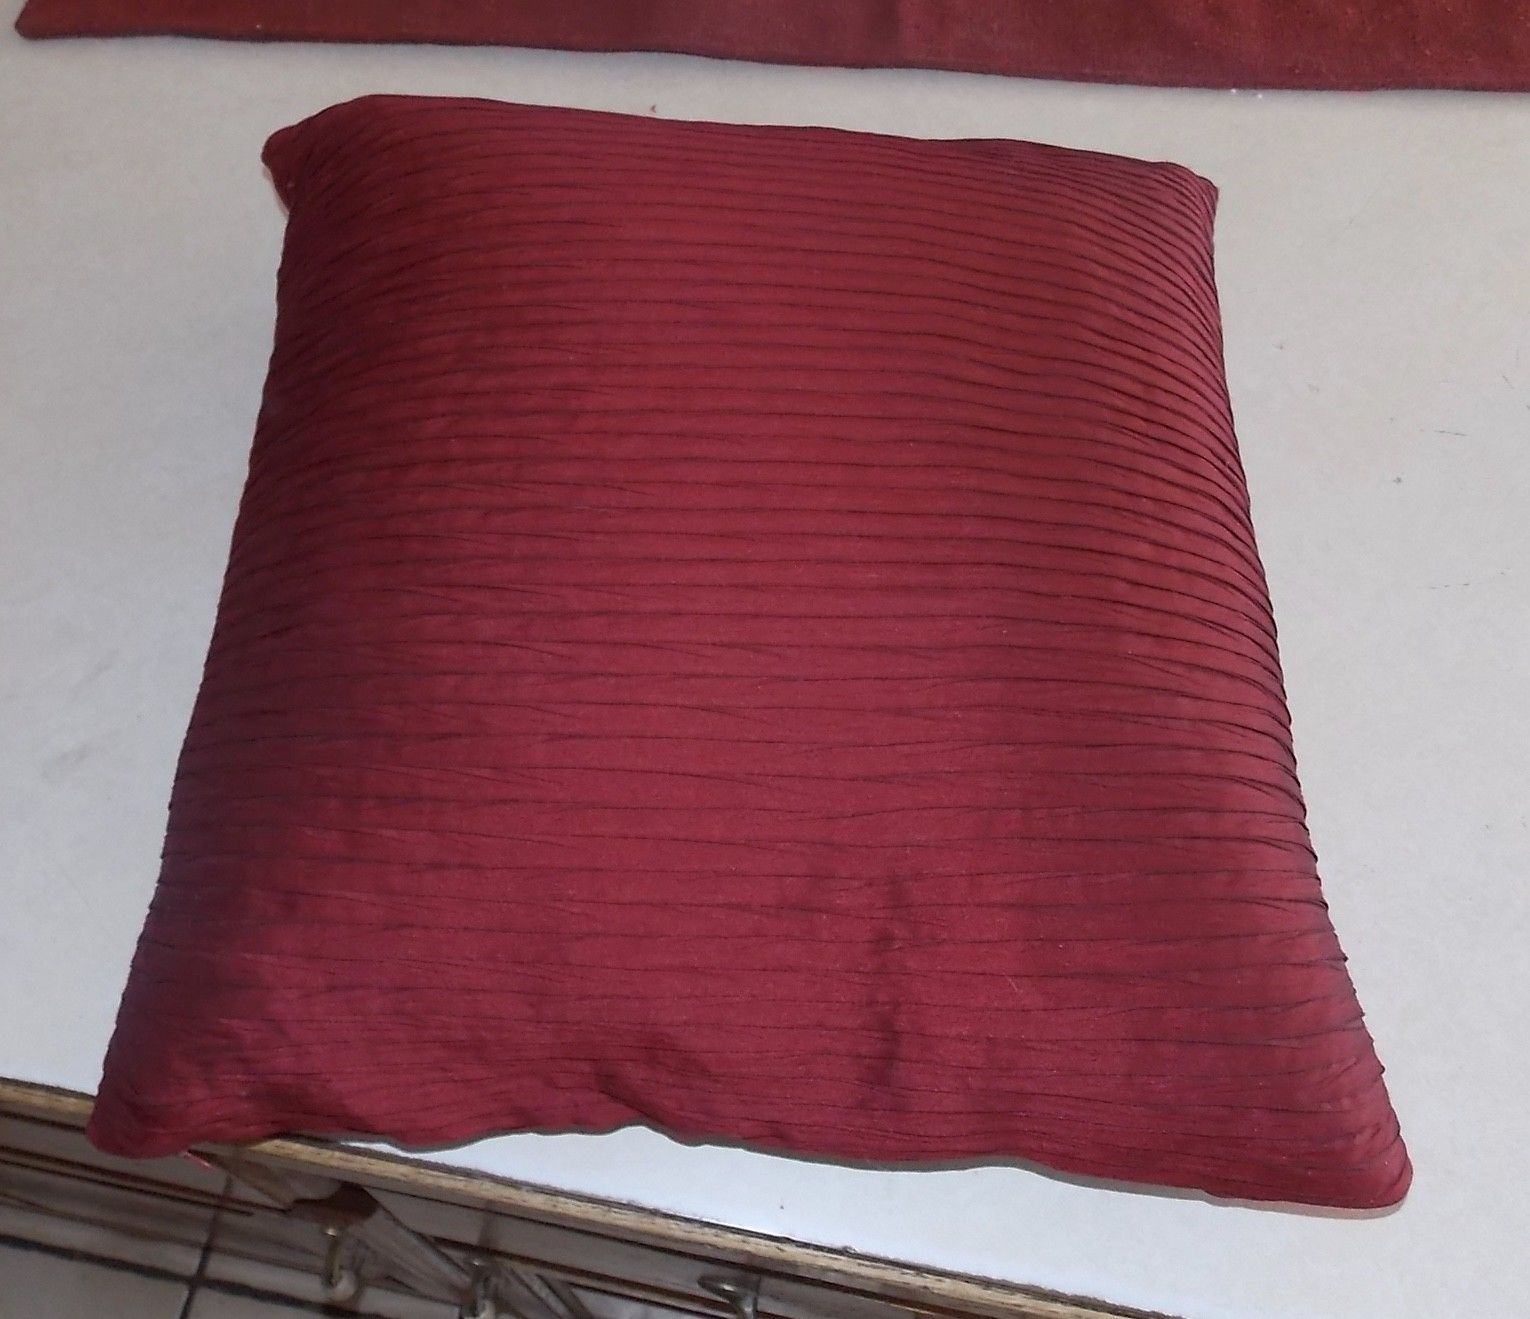 Red Stripe Print Decorative Down Filled Throw Pillow - $39.95